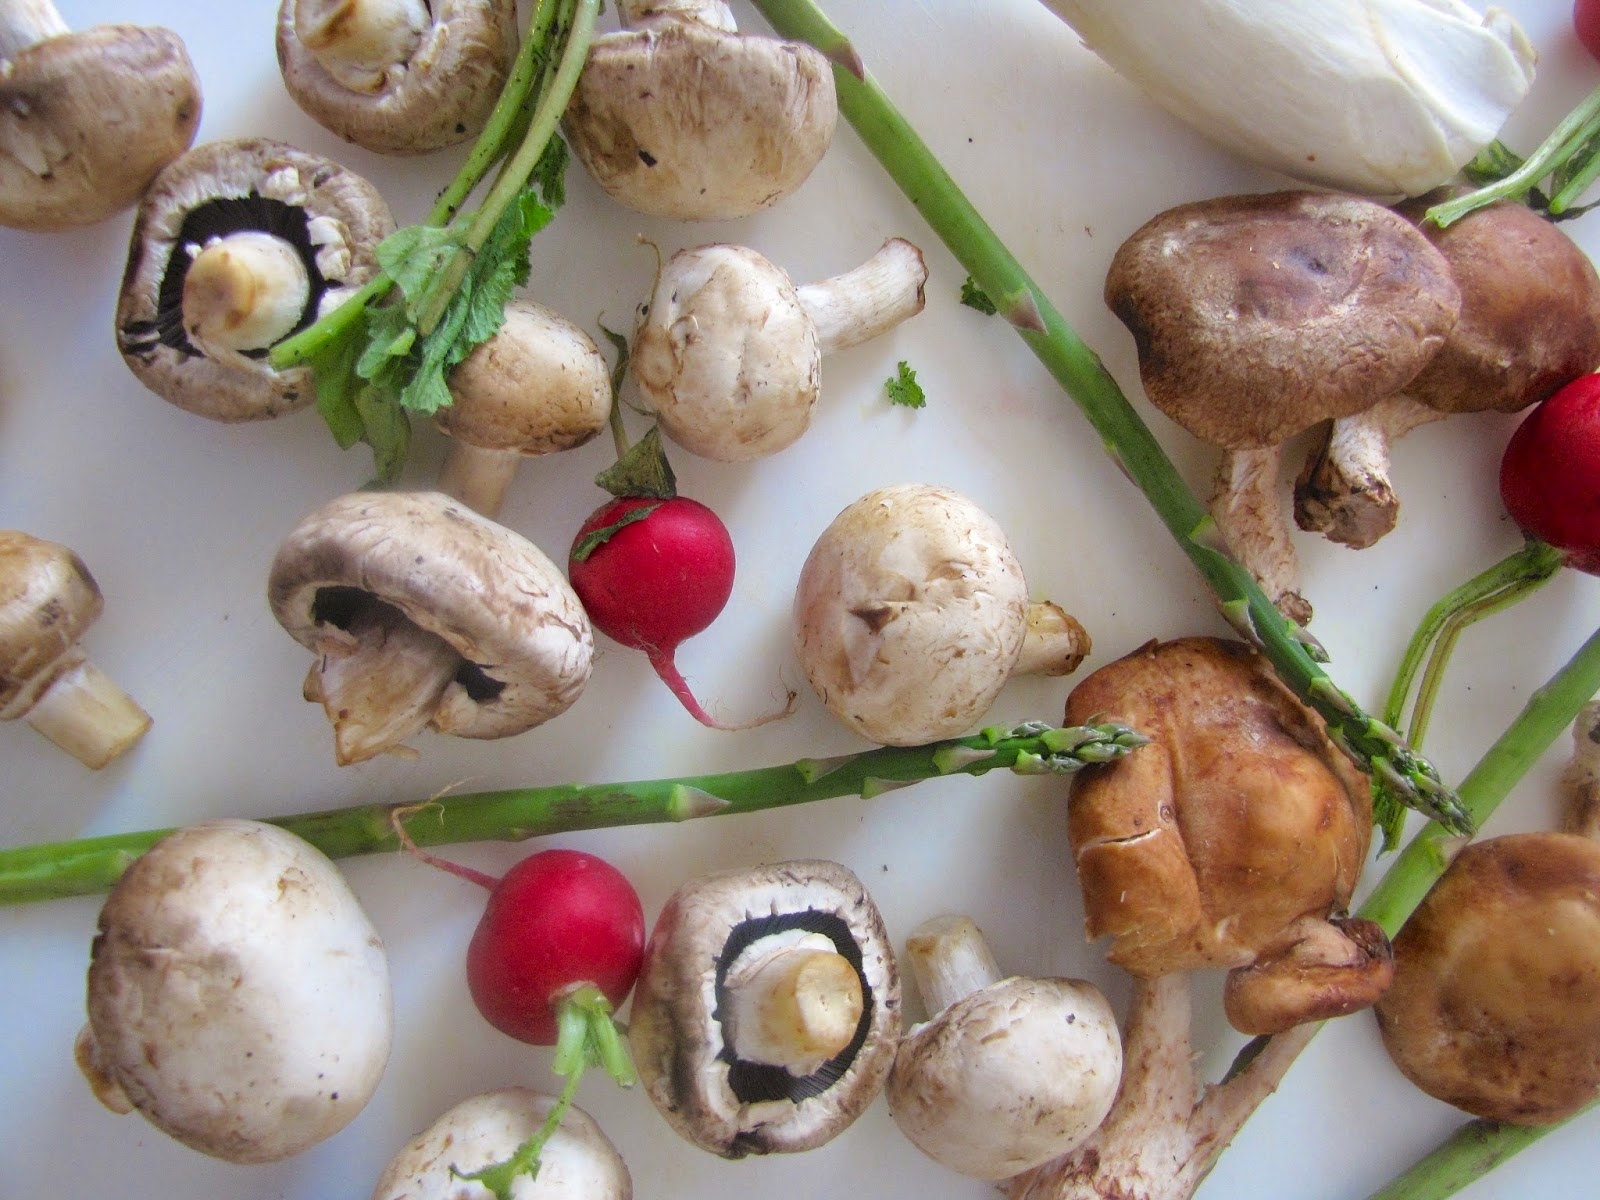 button mushroom, shiitake mushrooms, radishes and trumpet mushrooms on a white board